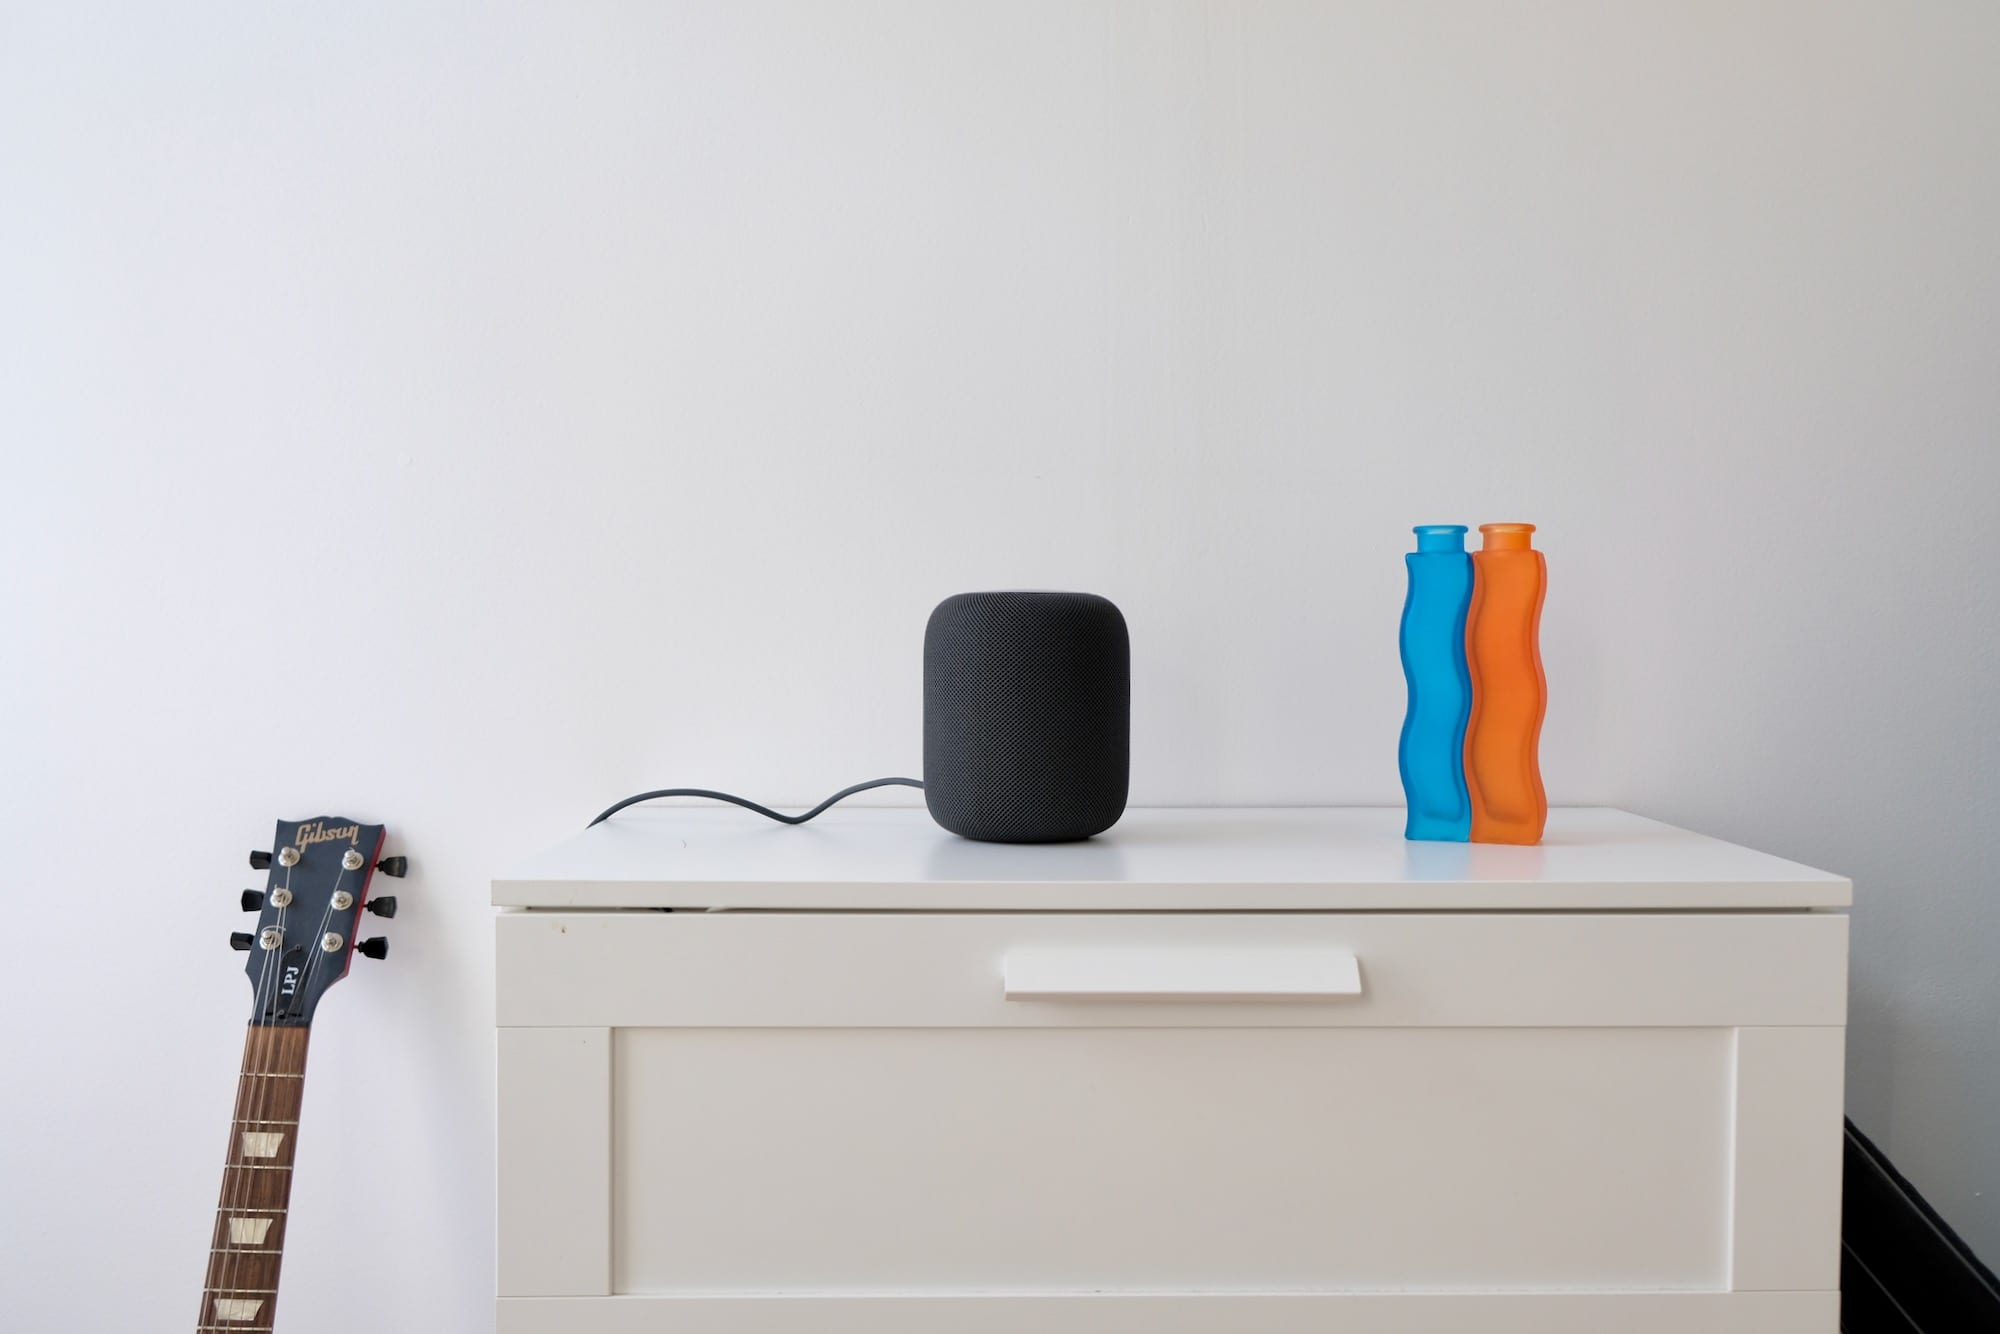 apple homepod recenzia12 - Recenzia: Apple HomePod